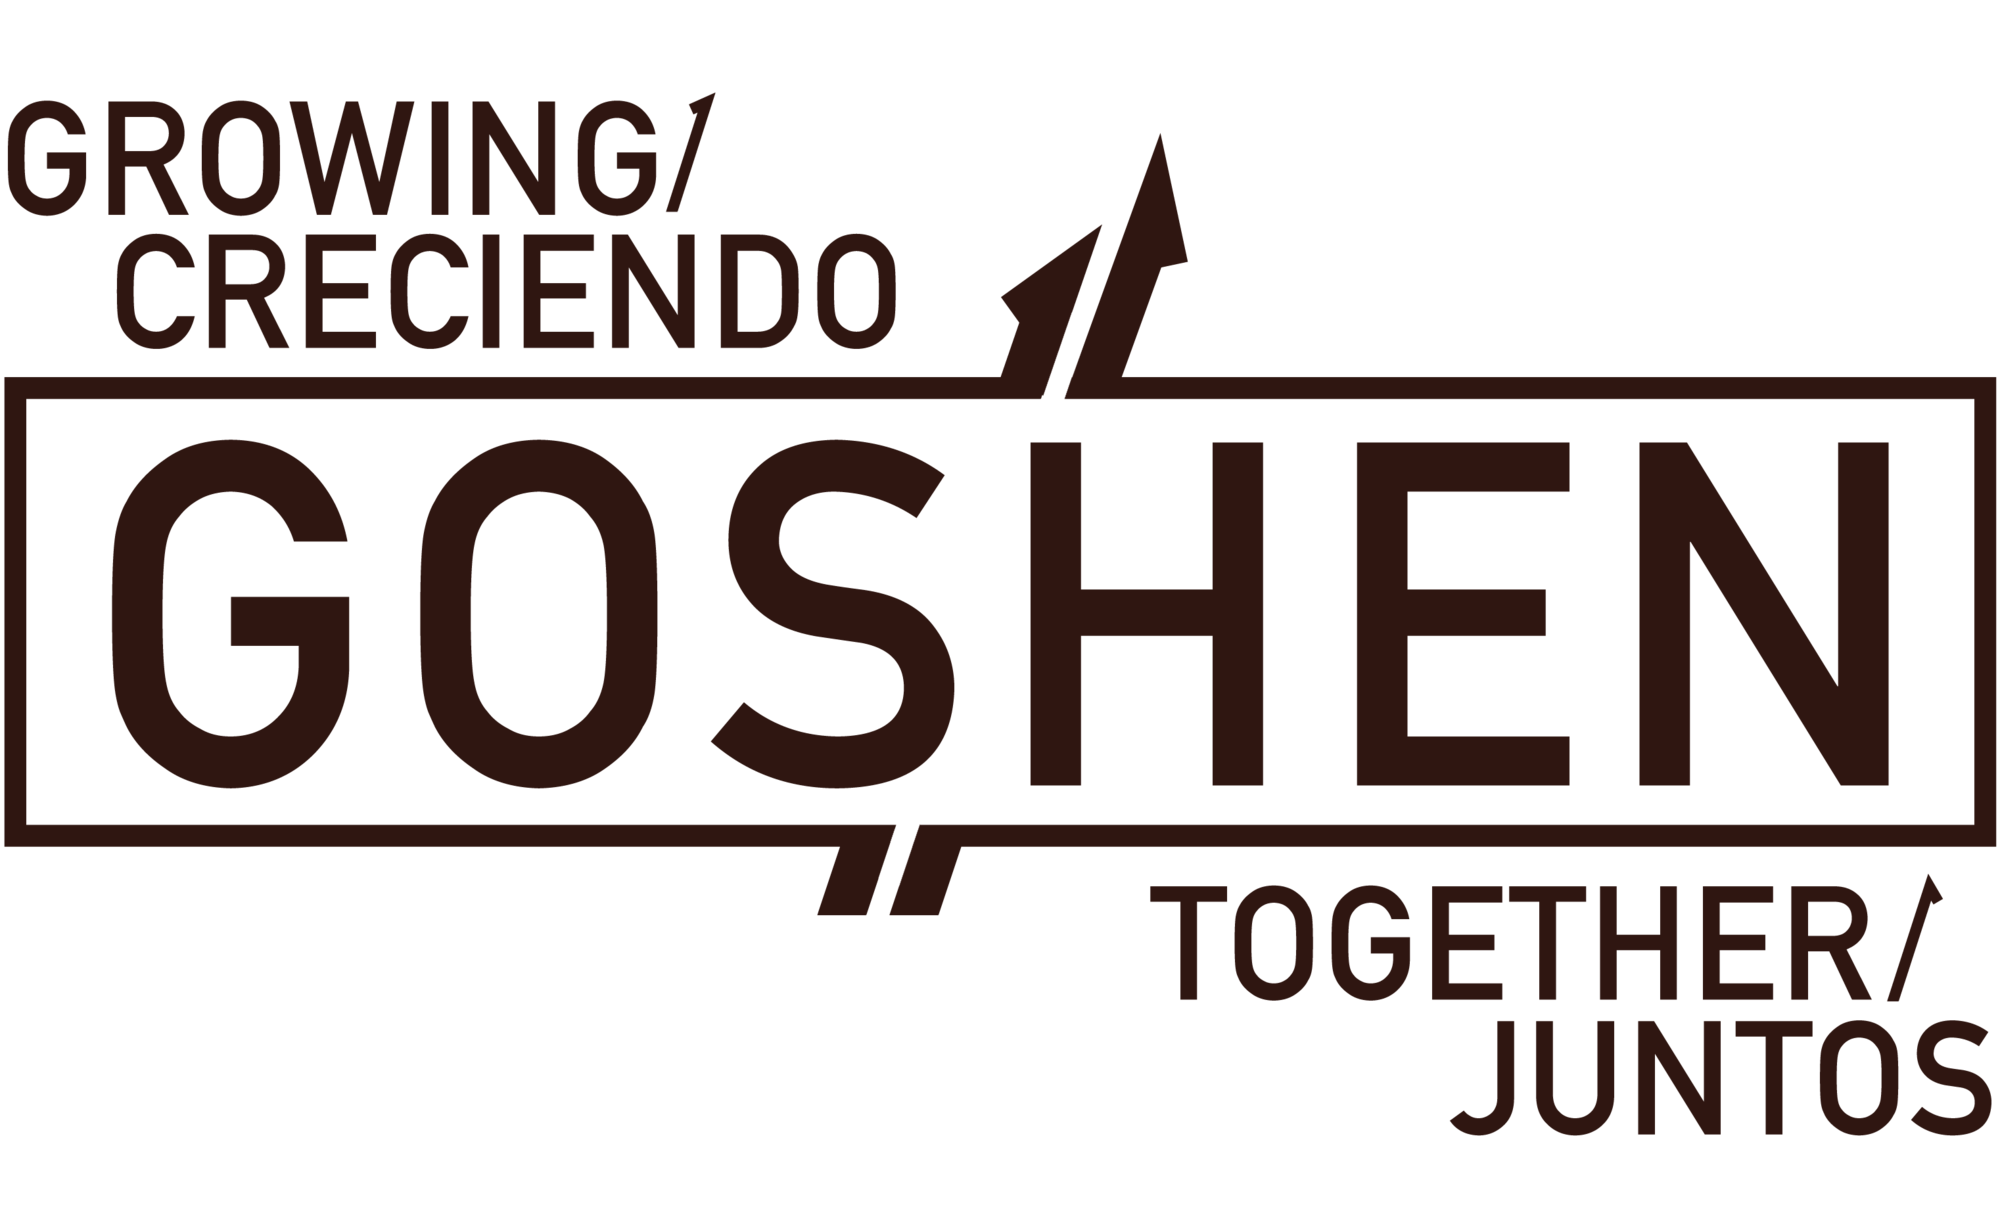 Growing Goshen Together/Creciendo Goshen Juntos logo